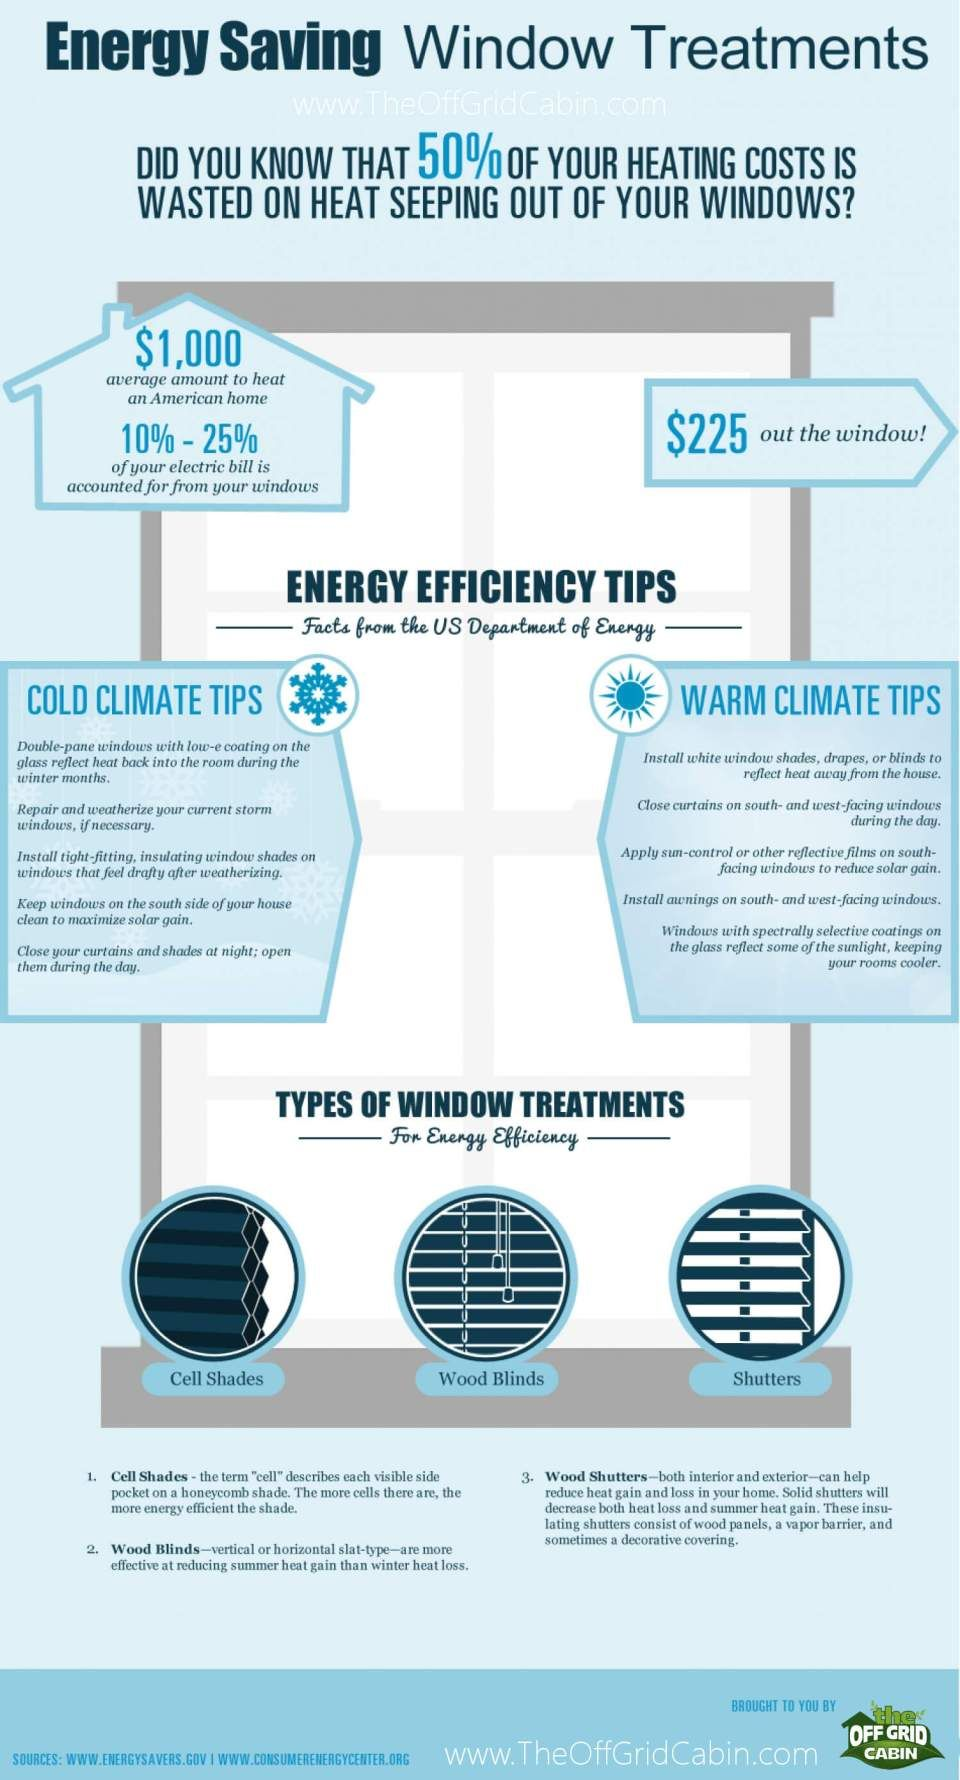 11 Essential Factors When Choosing Off Grid Windows and